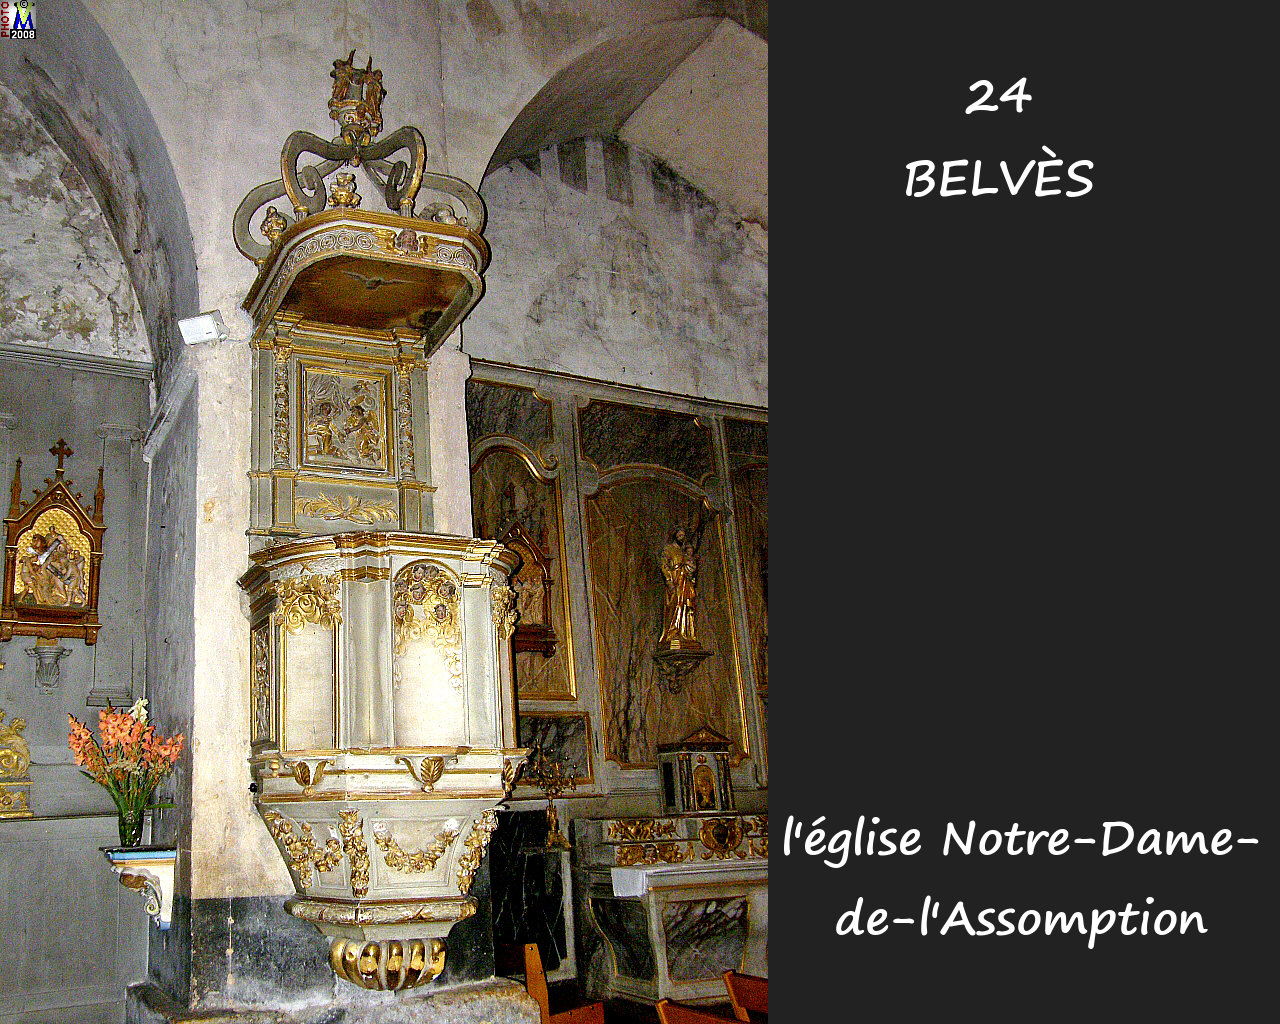 24BELVES_eglise_230.jpg